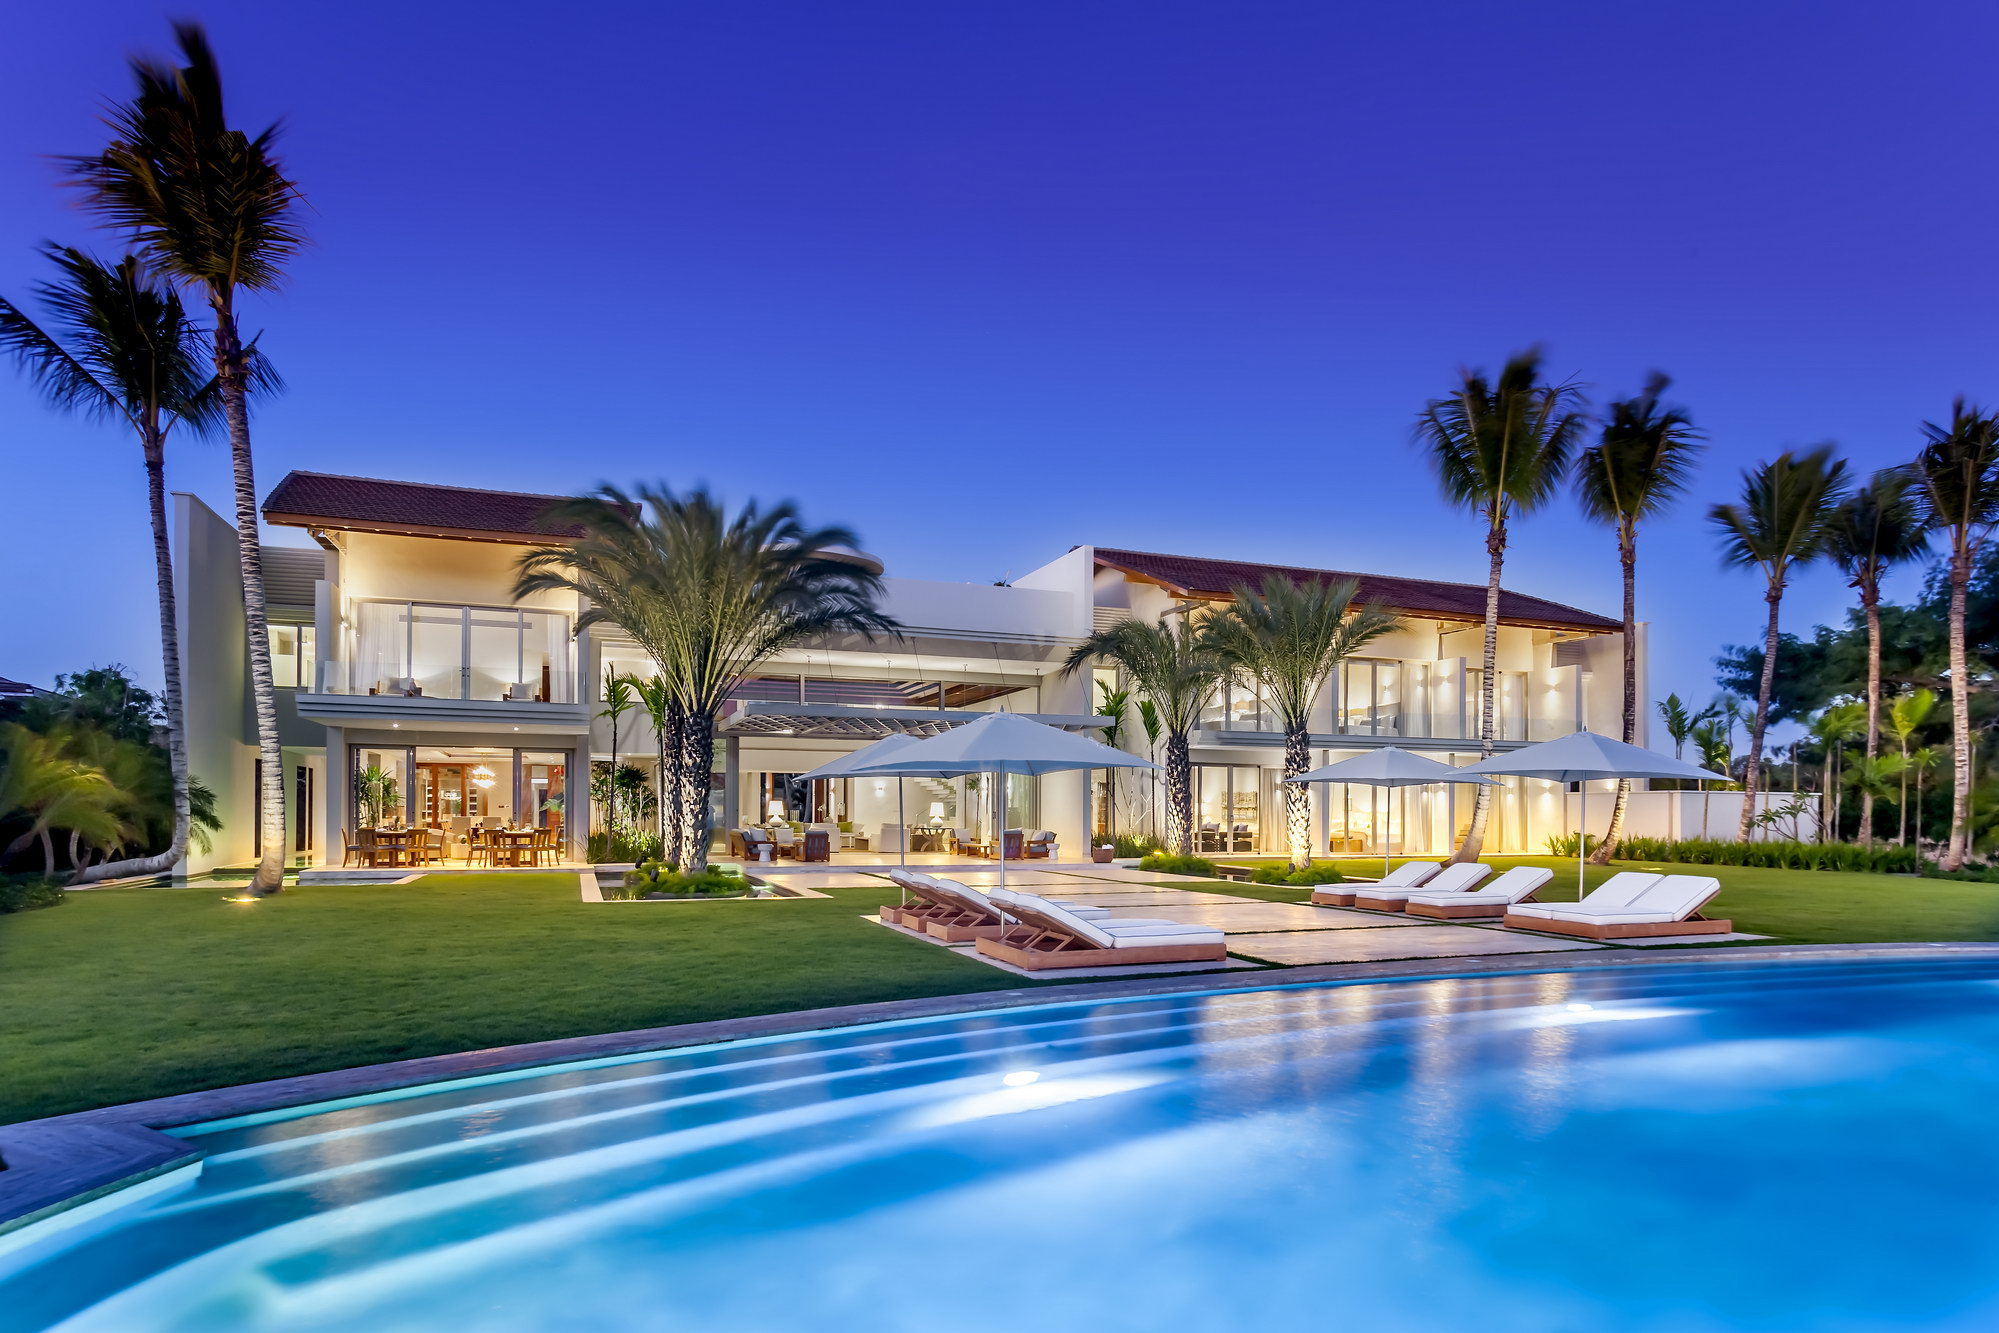 Dominican Republic Luxury Real Estate and Homes for Sales. Dominican Republic luxury real estate listings at the 360Luxury International Realty(r) website. We have complete listings for luxury homes for Sales in Dominican Republic.